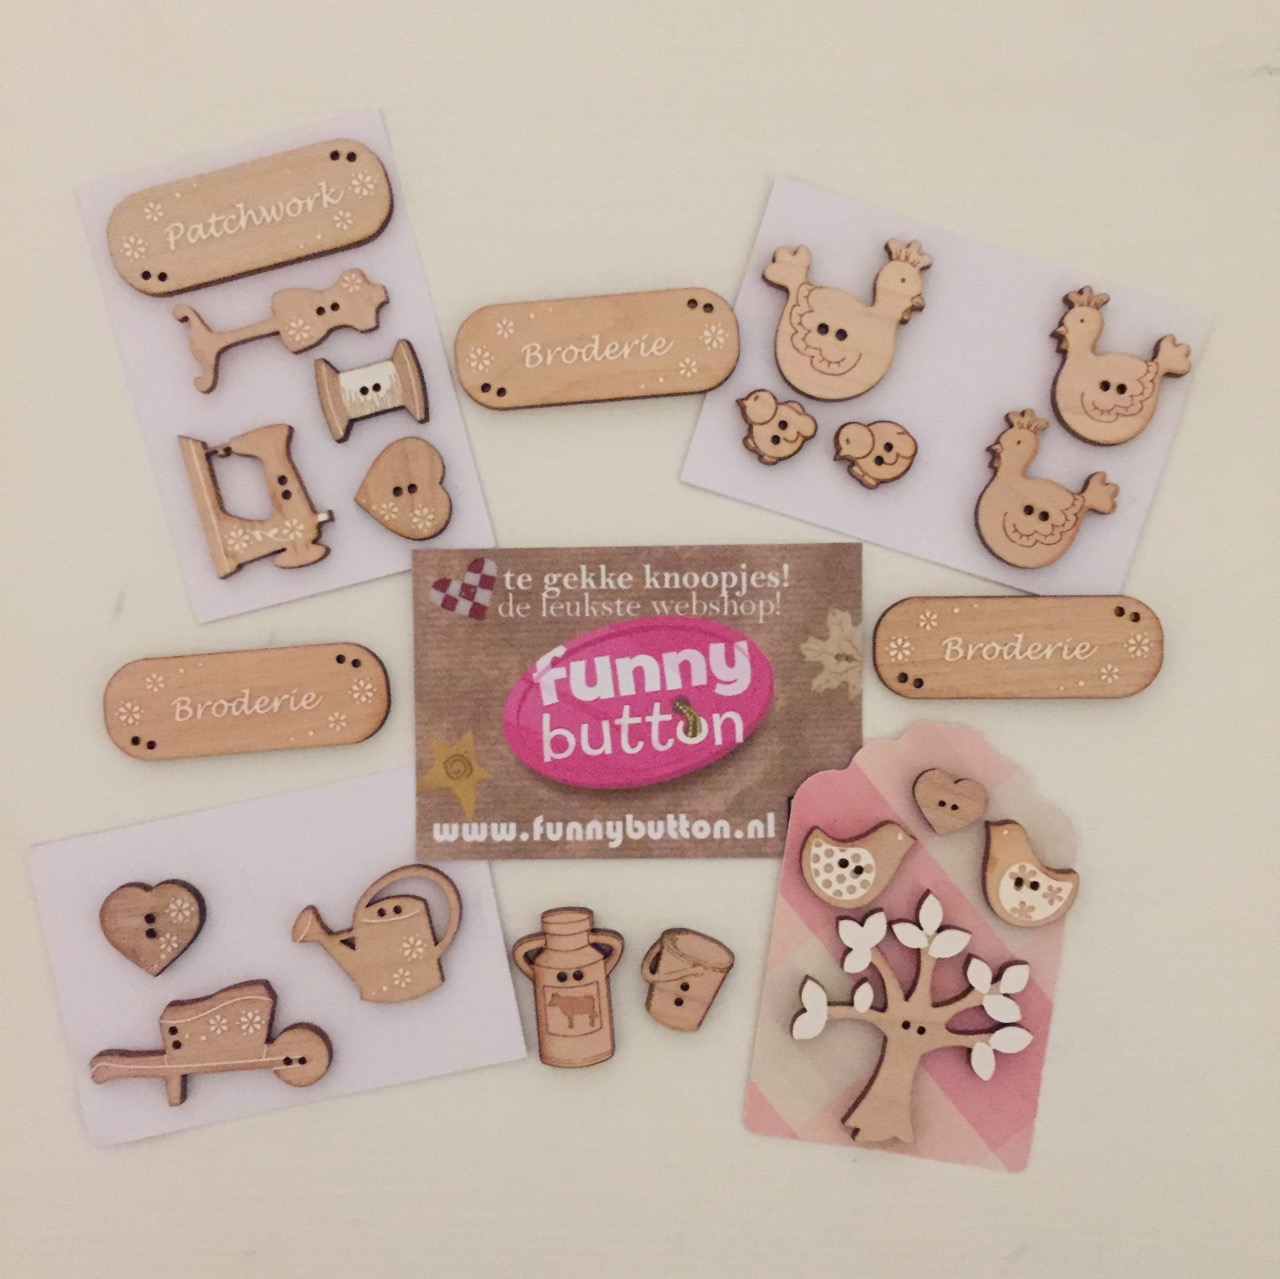 Buttons from Funny Buttons